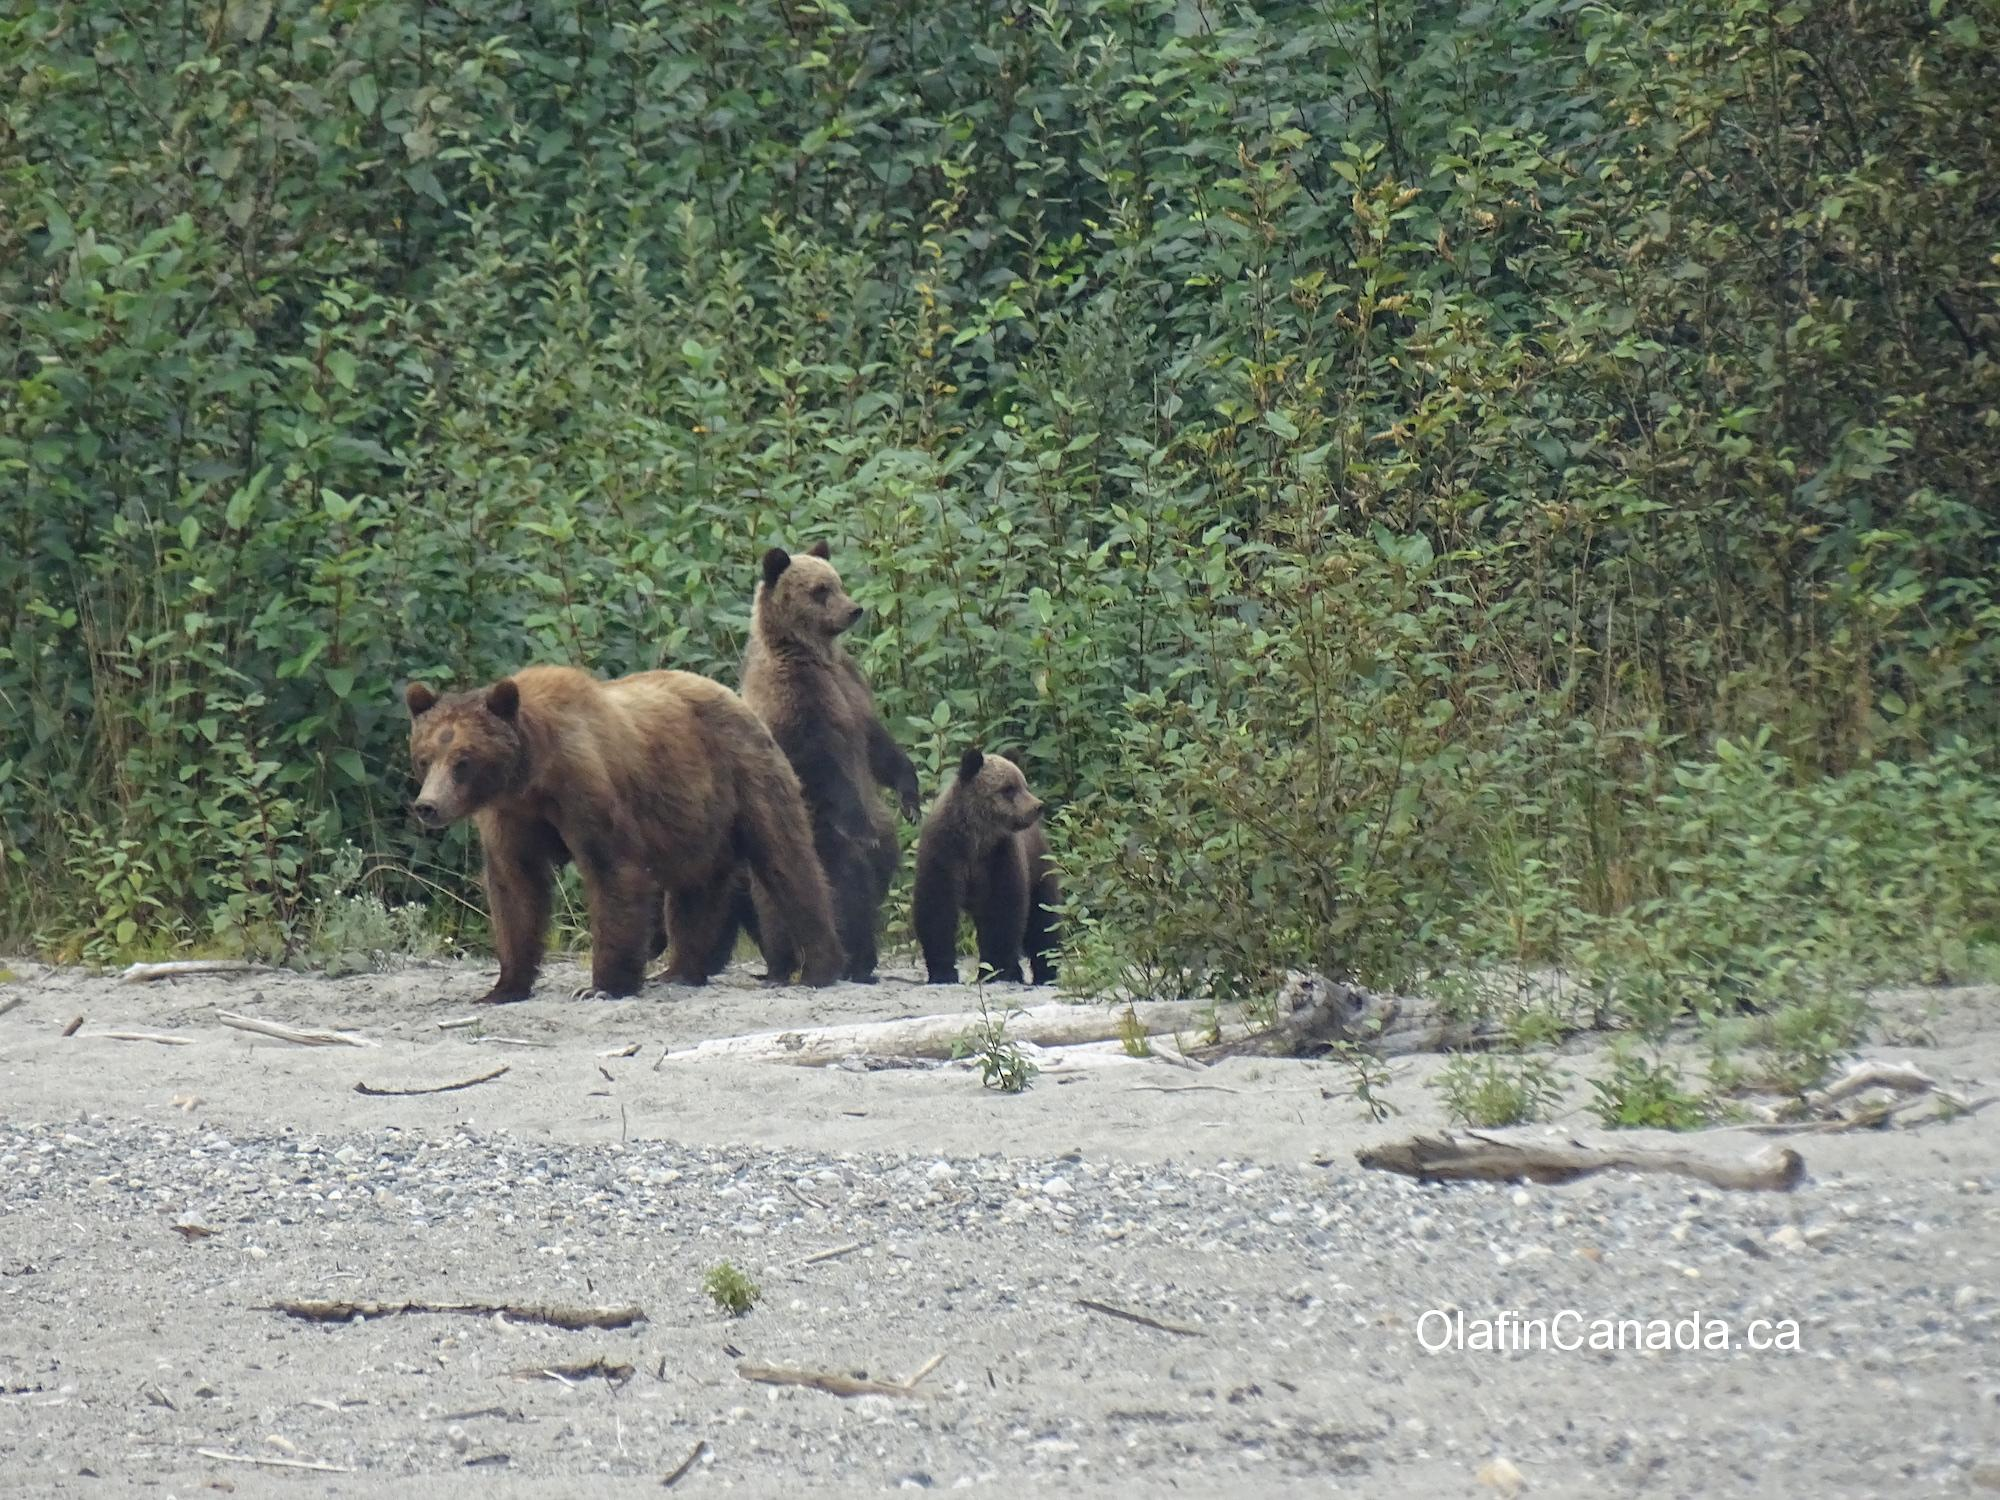 Grizzly family with smallest cub standing, Bute Inlet #olafincanada #britishcolumbia #discoverbc #buteinlet #wildlife #grizzlybear